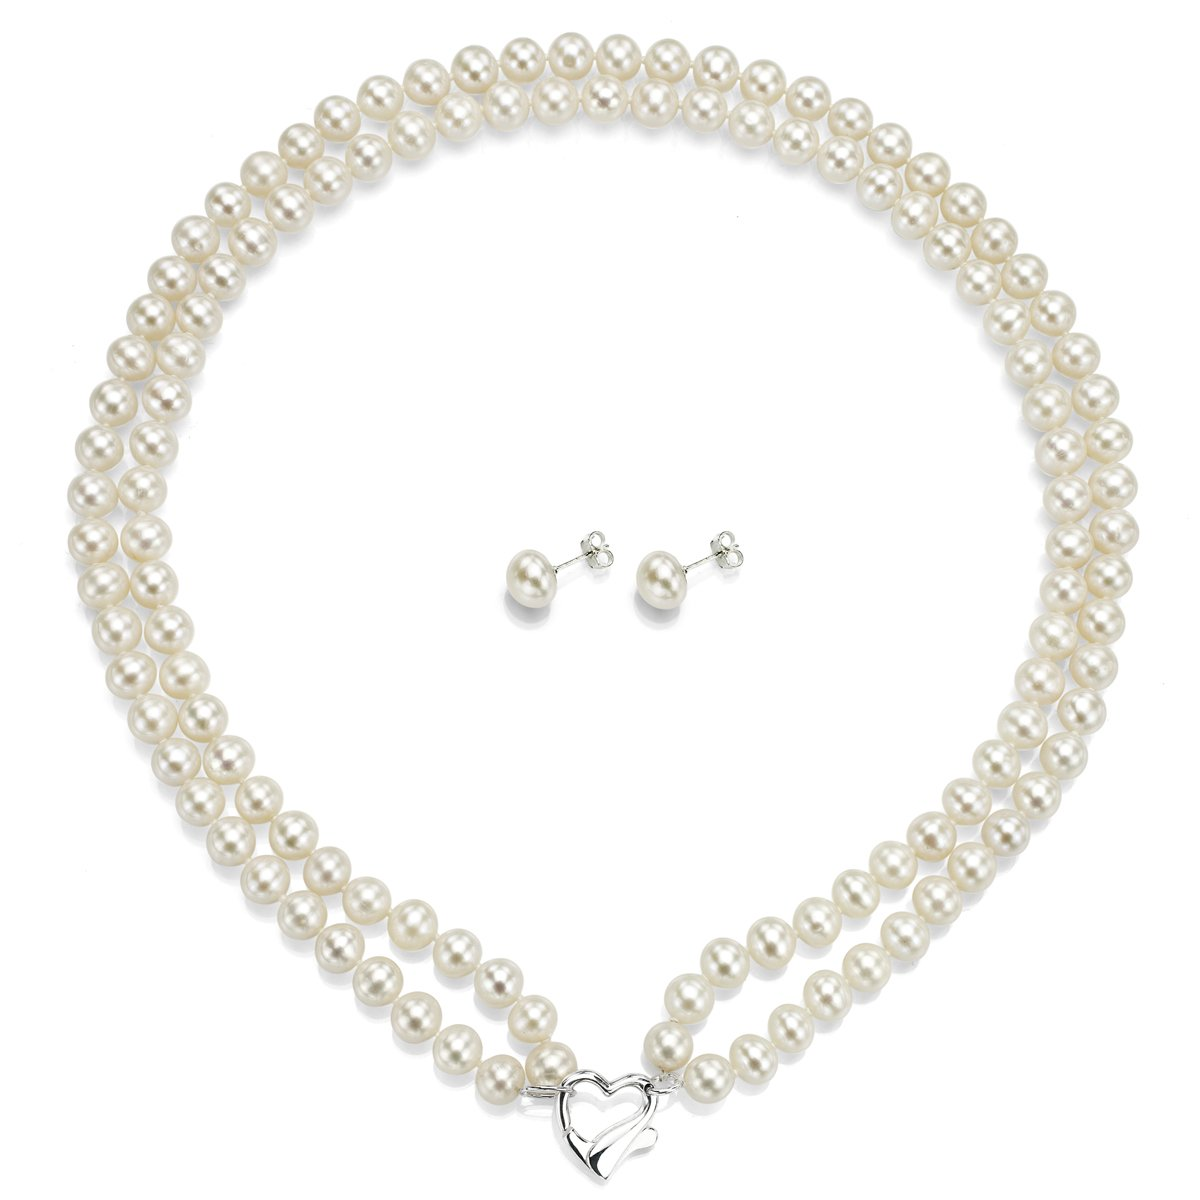 La Regis Jewelry Heart Shape Sterling Silver 2rows 7-7.5mm White Freshwater Cultured Pearl Necklace and Stud Earrings